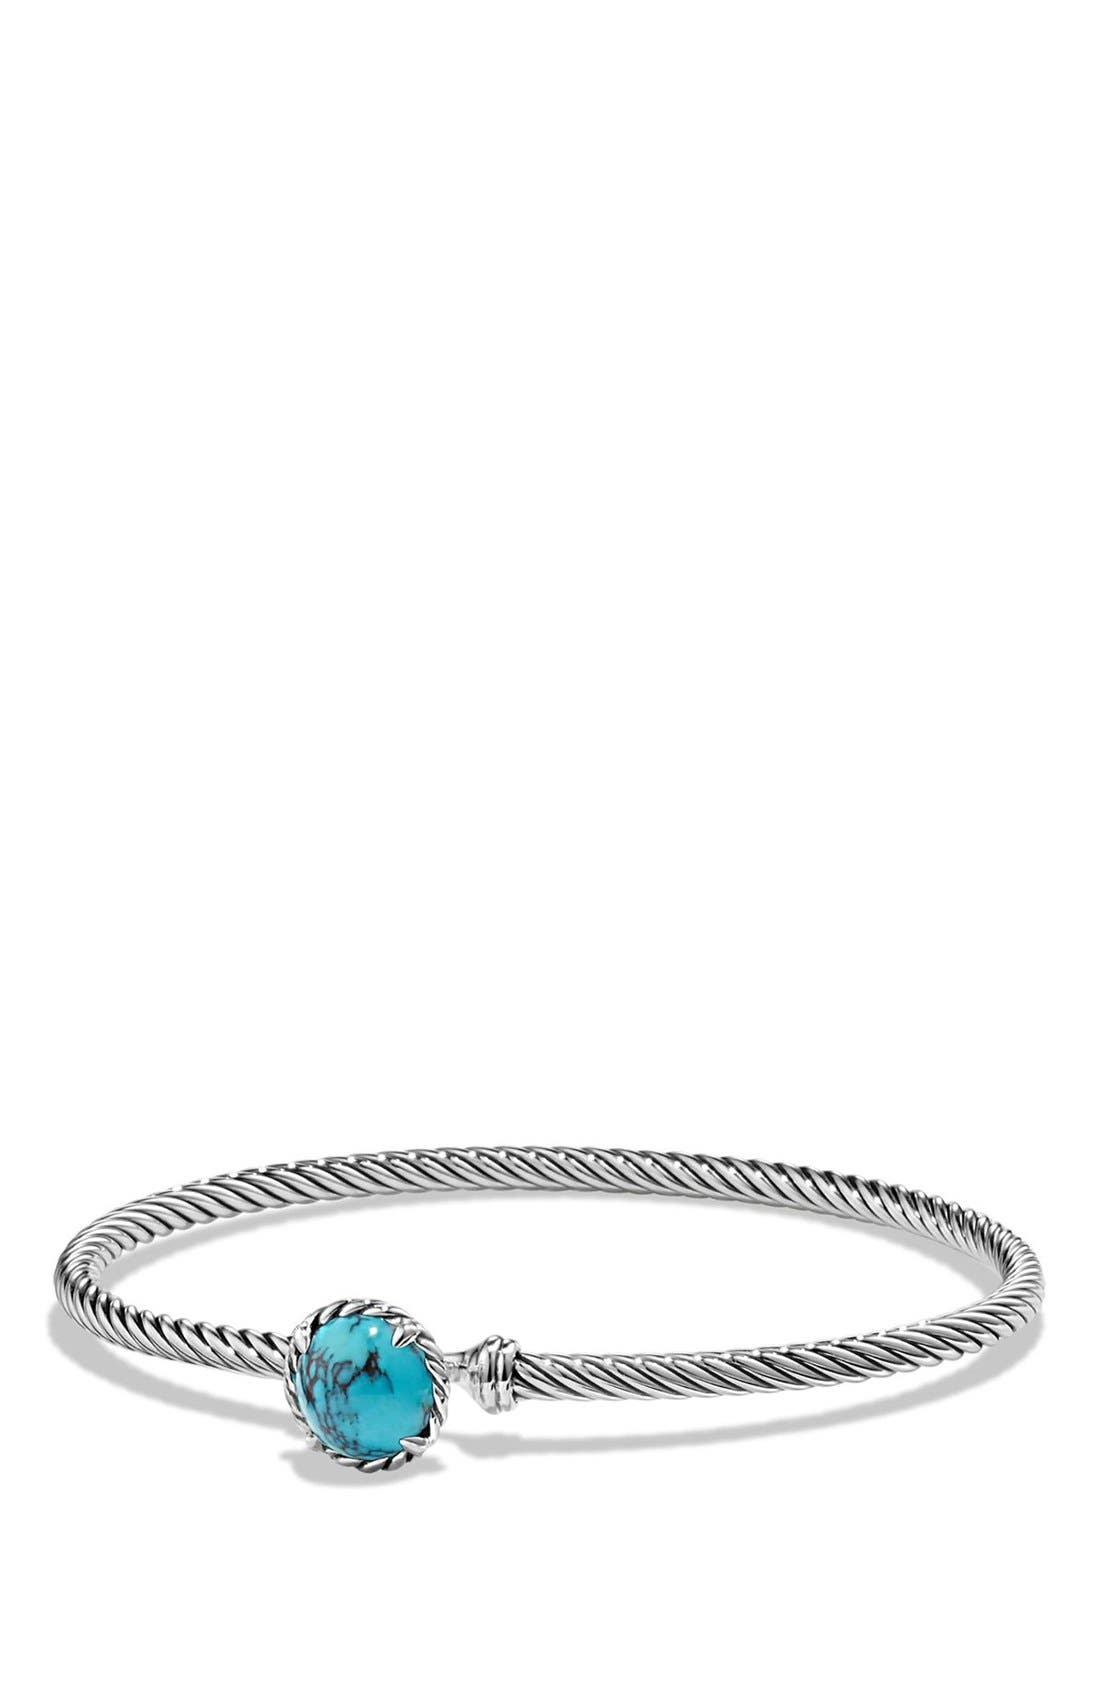 DAVID YURMAN,                             'Châtelaine' Bracelet,                             Main thumbnail 1, color,                             SILVER/ CHINESE TURQUOISE